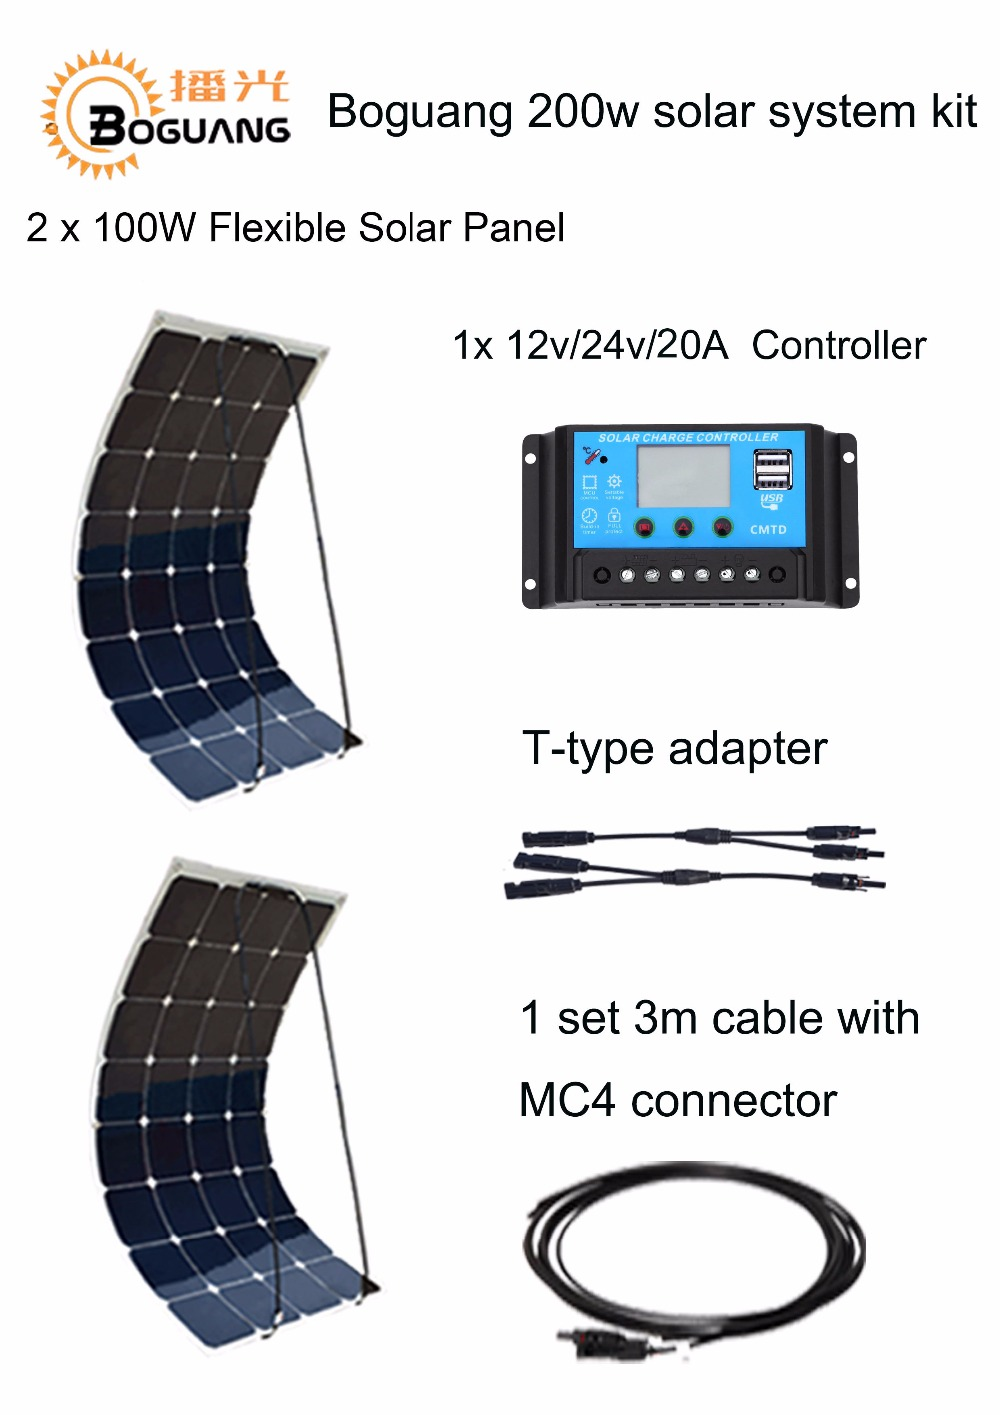 BOGUANG 200W 12V or 24v Solar panel System 2pcs 18V 100W flexible cable 20A solar controller DIY RV Boat house Kits china light dc house de stock complete kit 200w 2x 100w pv solar panel for 12v 24v rv boat solar system free shipping